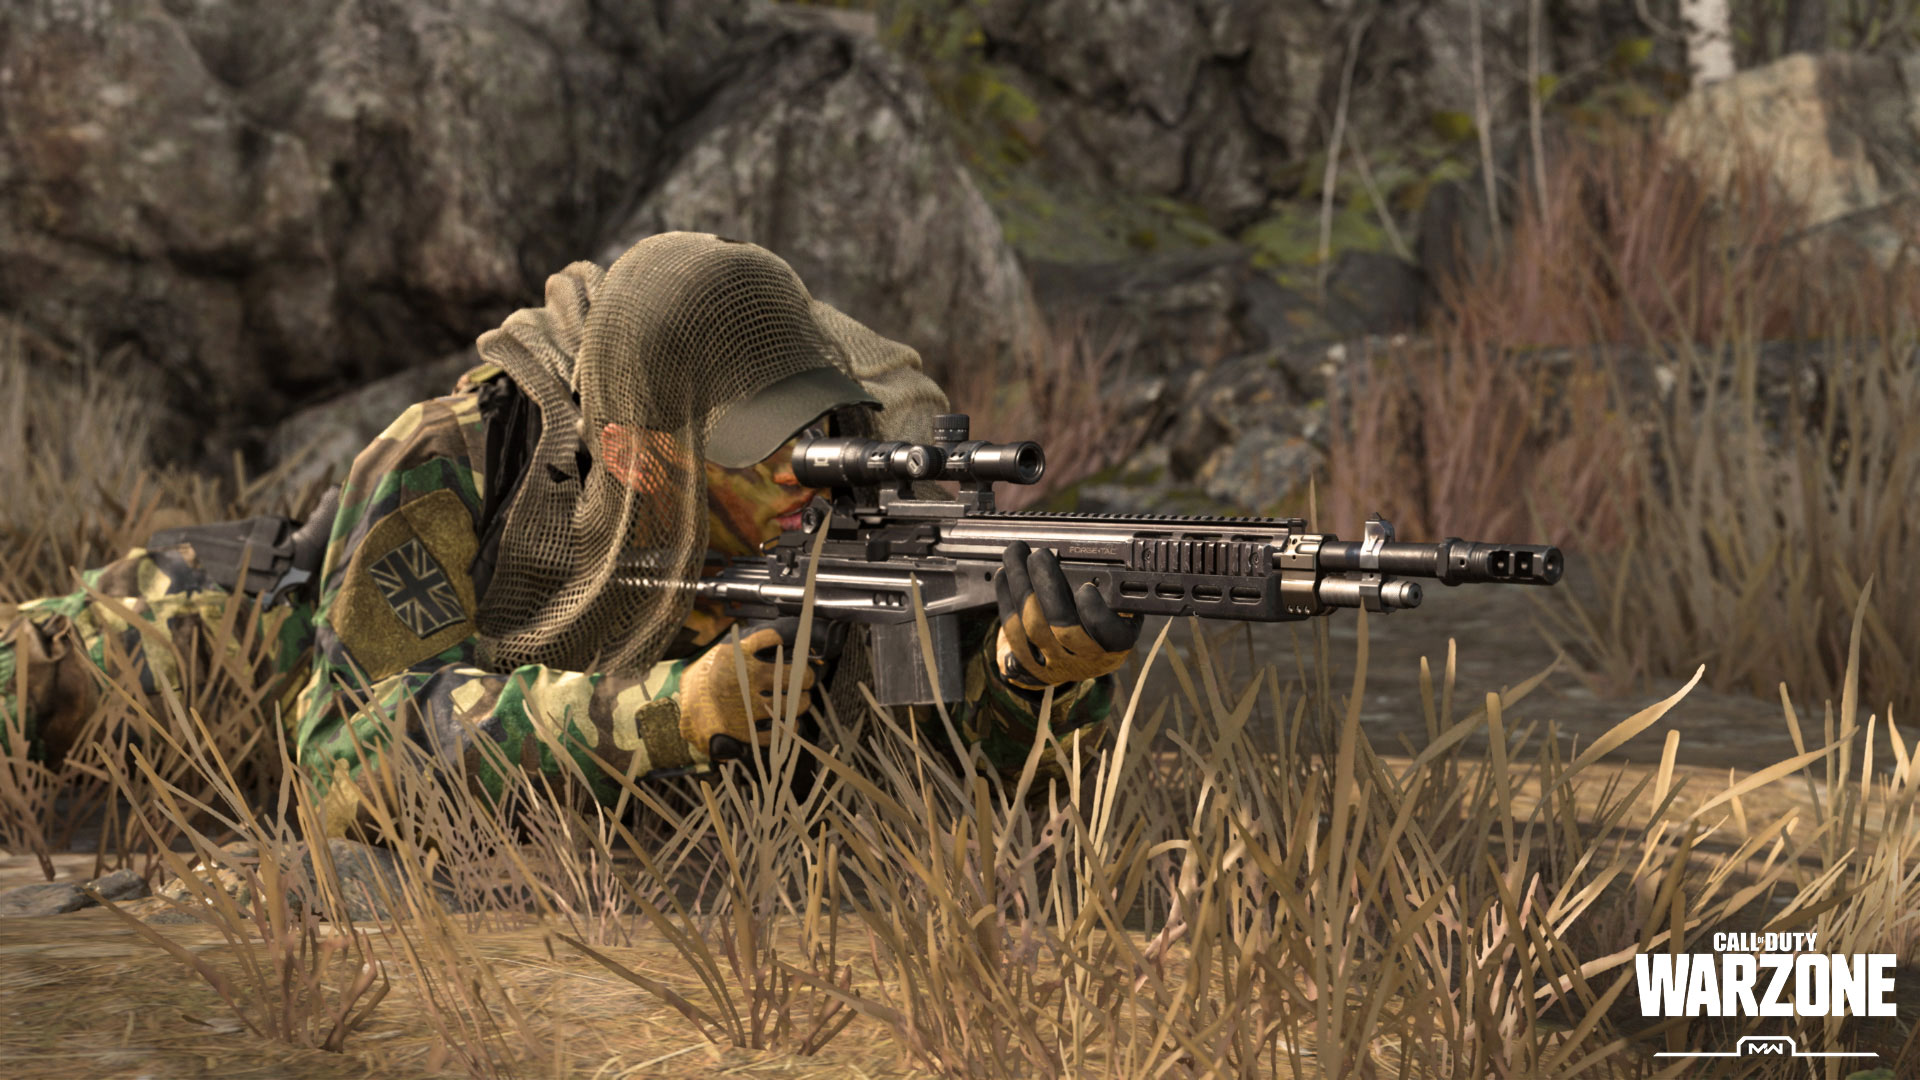 This Week In Call Of Duty April 13